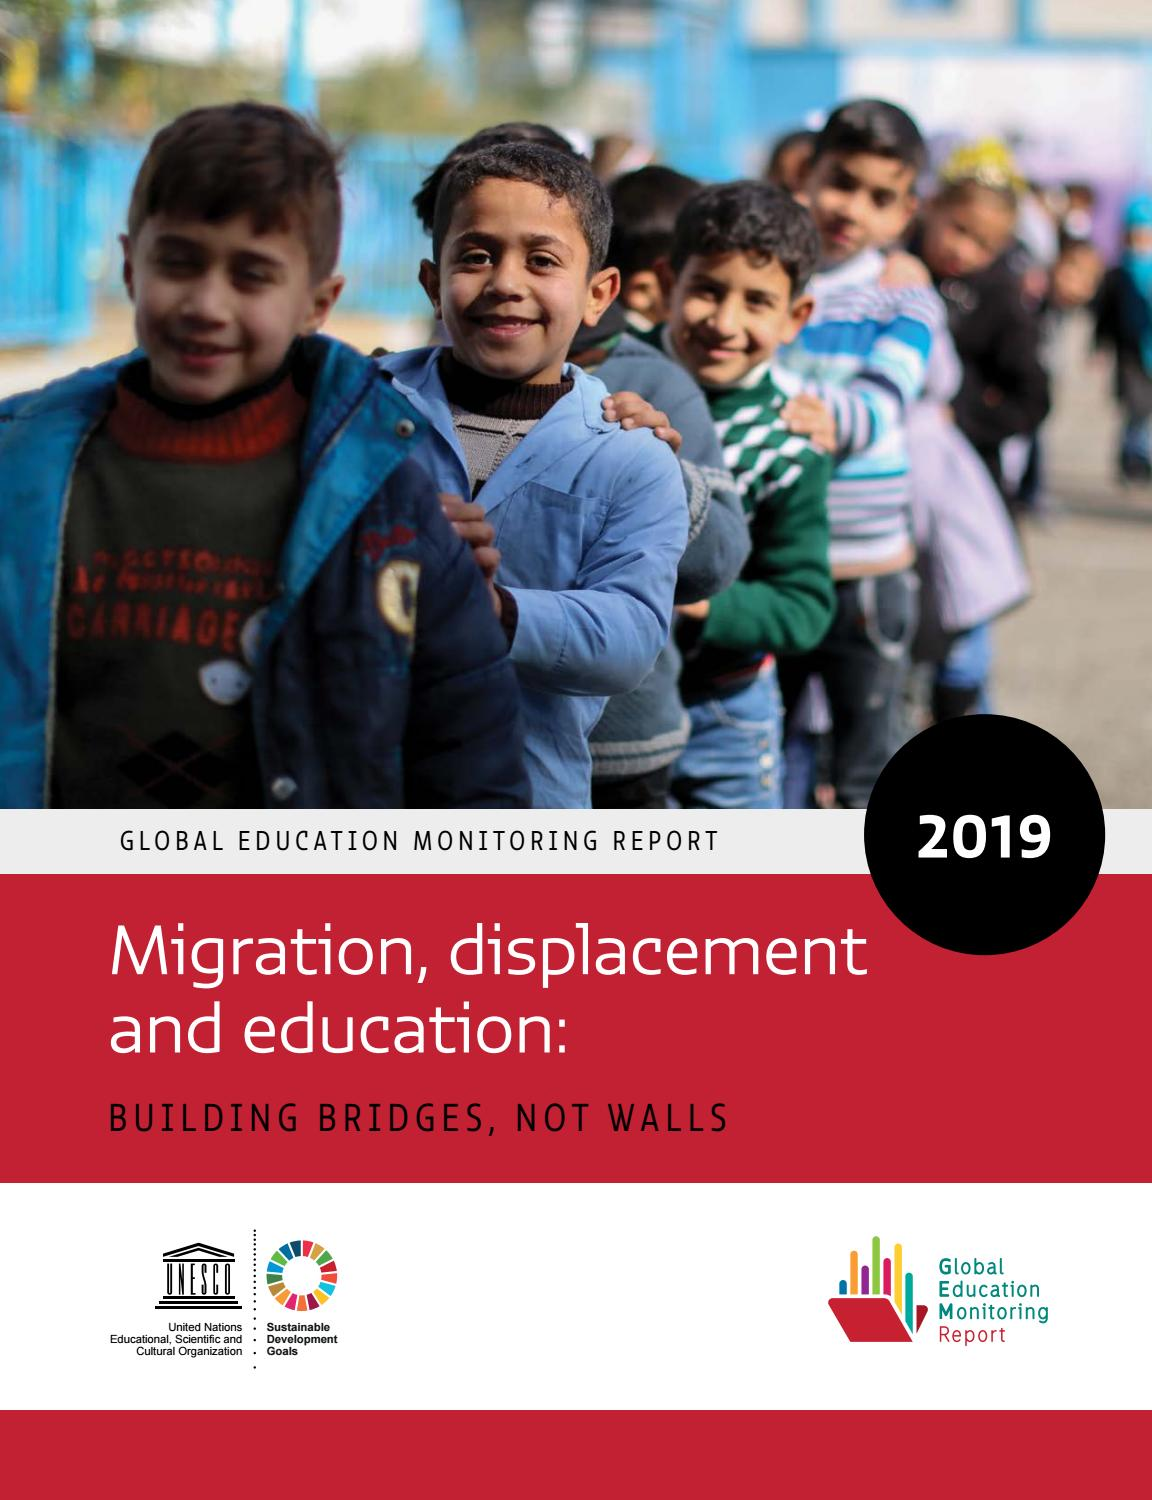 Global Education Monitoring Report 2019 by United Nations